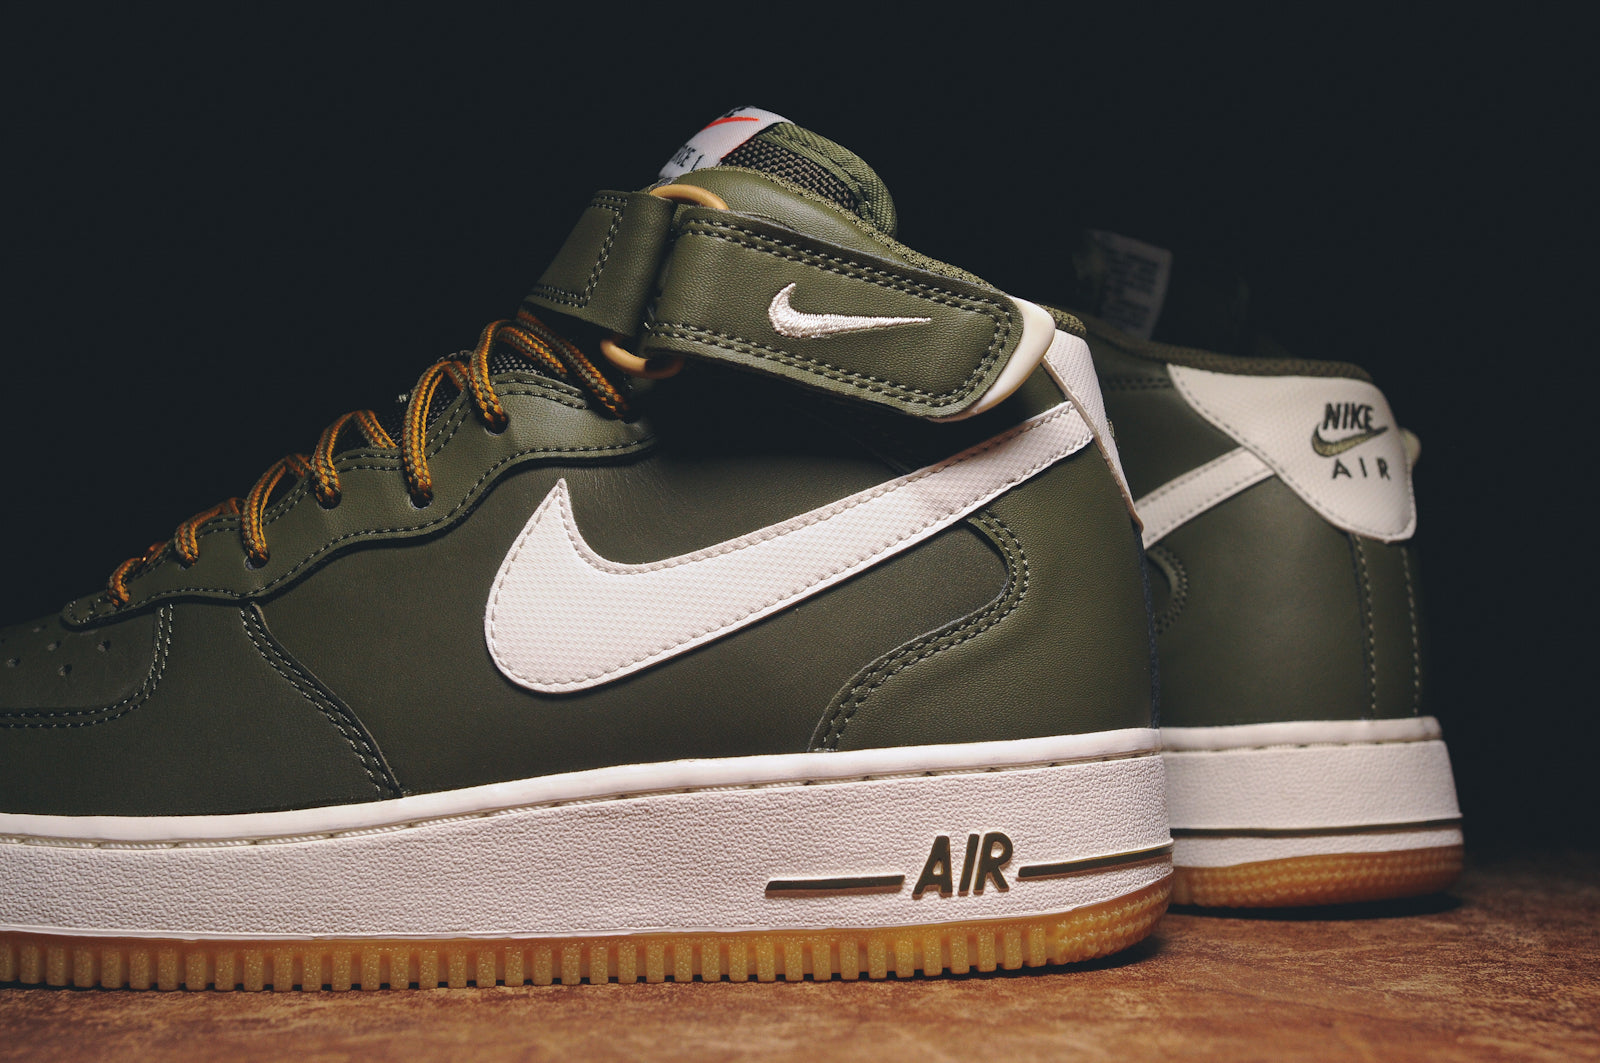 taille 40 3fb86 d0a22 NIKE AIR FORCE 1 MID '07 - OLIVE / GUM @ KITH NYC – Kith